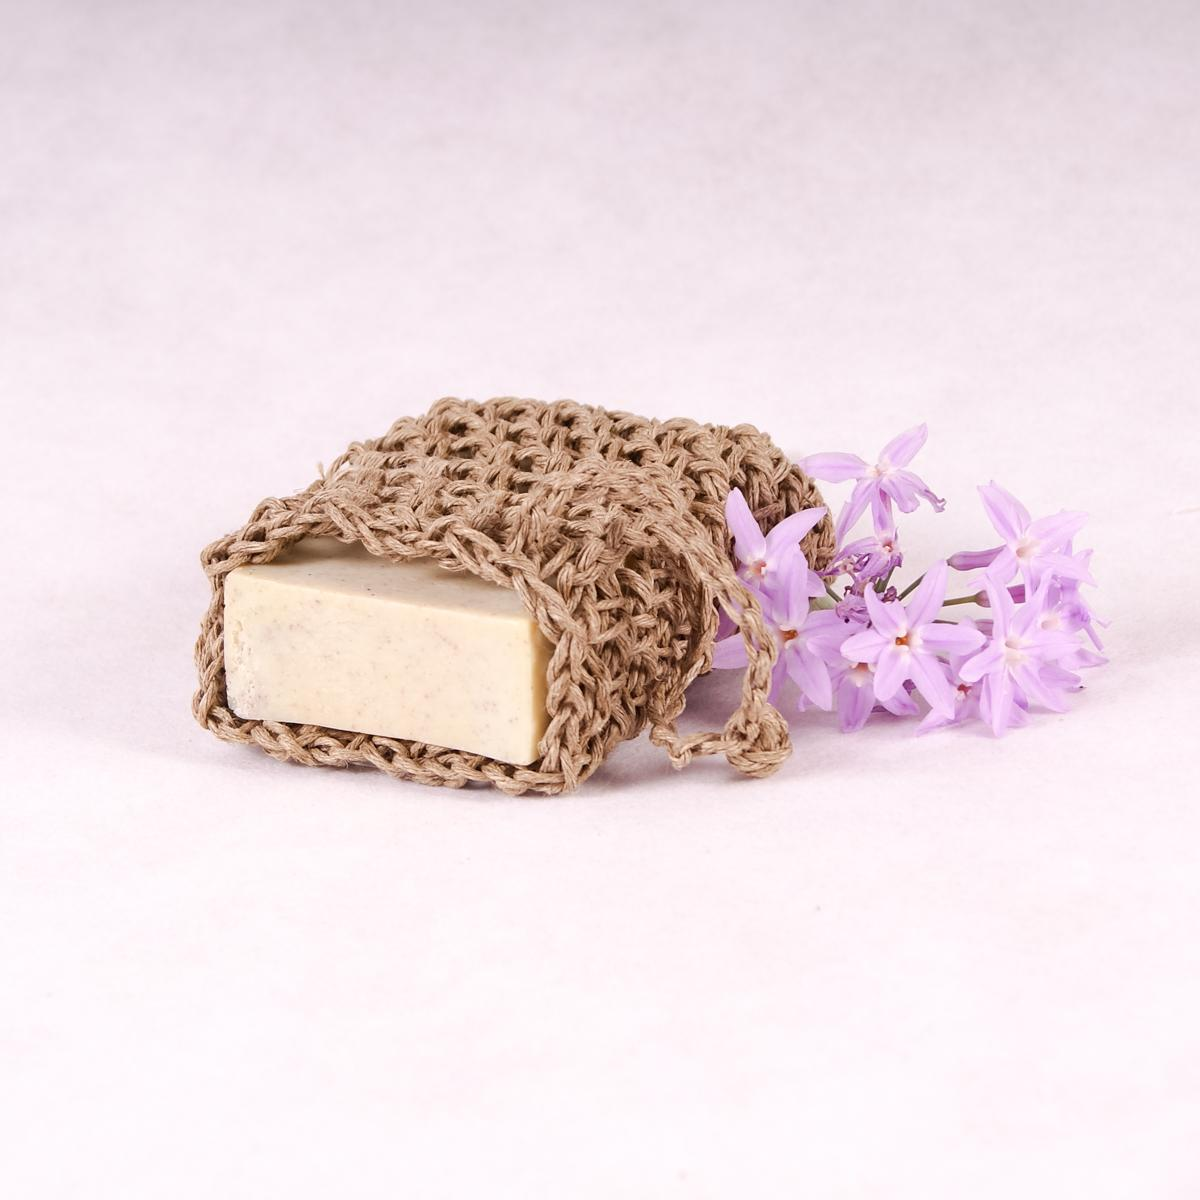 Soap Saver - Hemp - Soap Saver - Throw Some Seeds - Australian gardening gifts and eco products online!